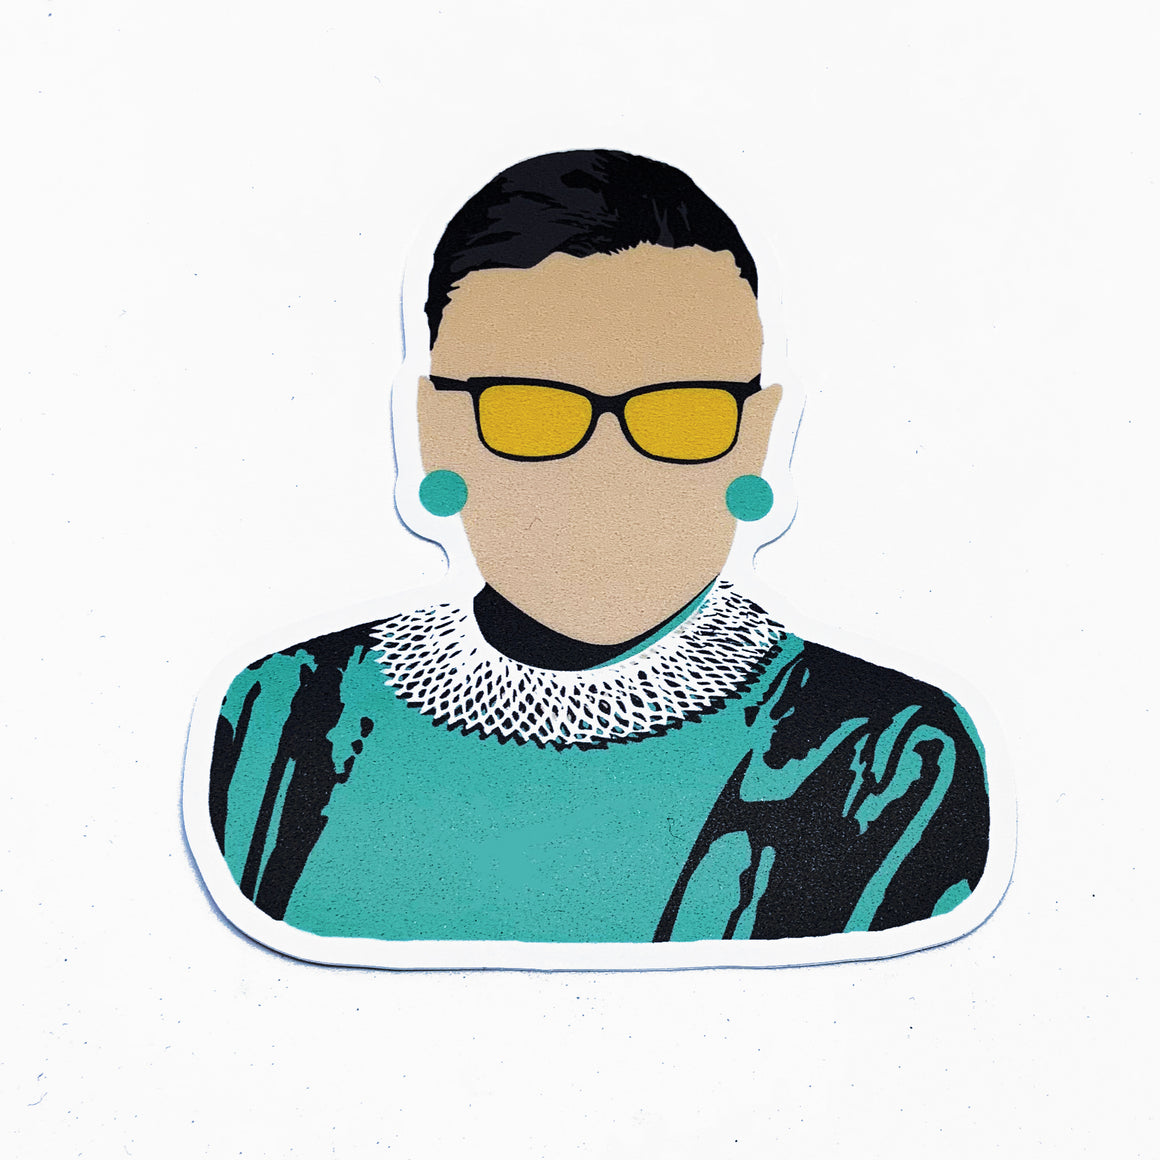 Citizen Ruth - Minimalist RBG Sticker